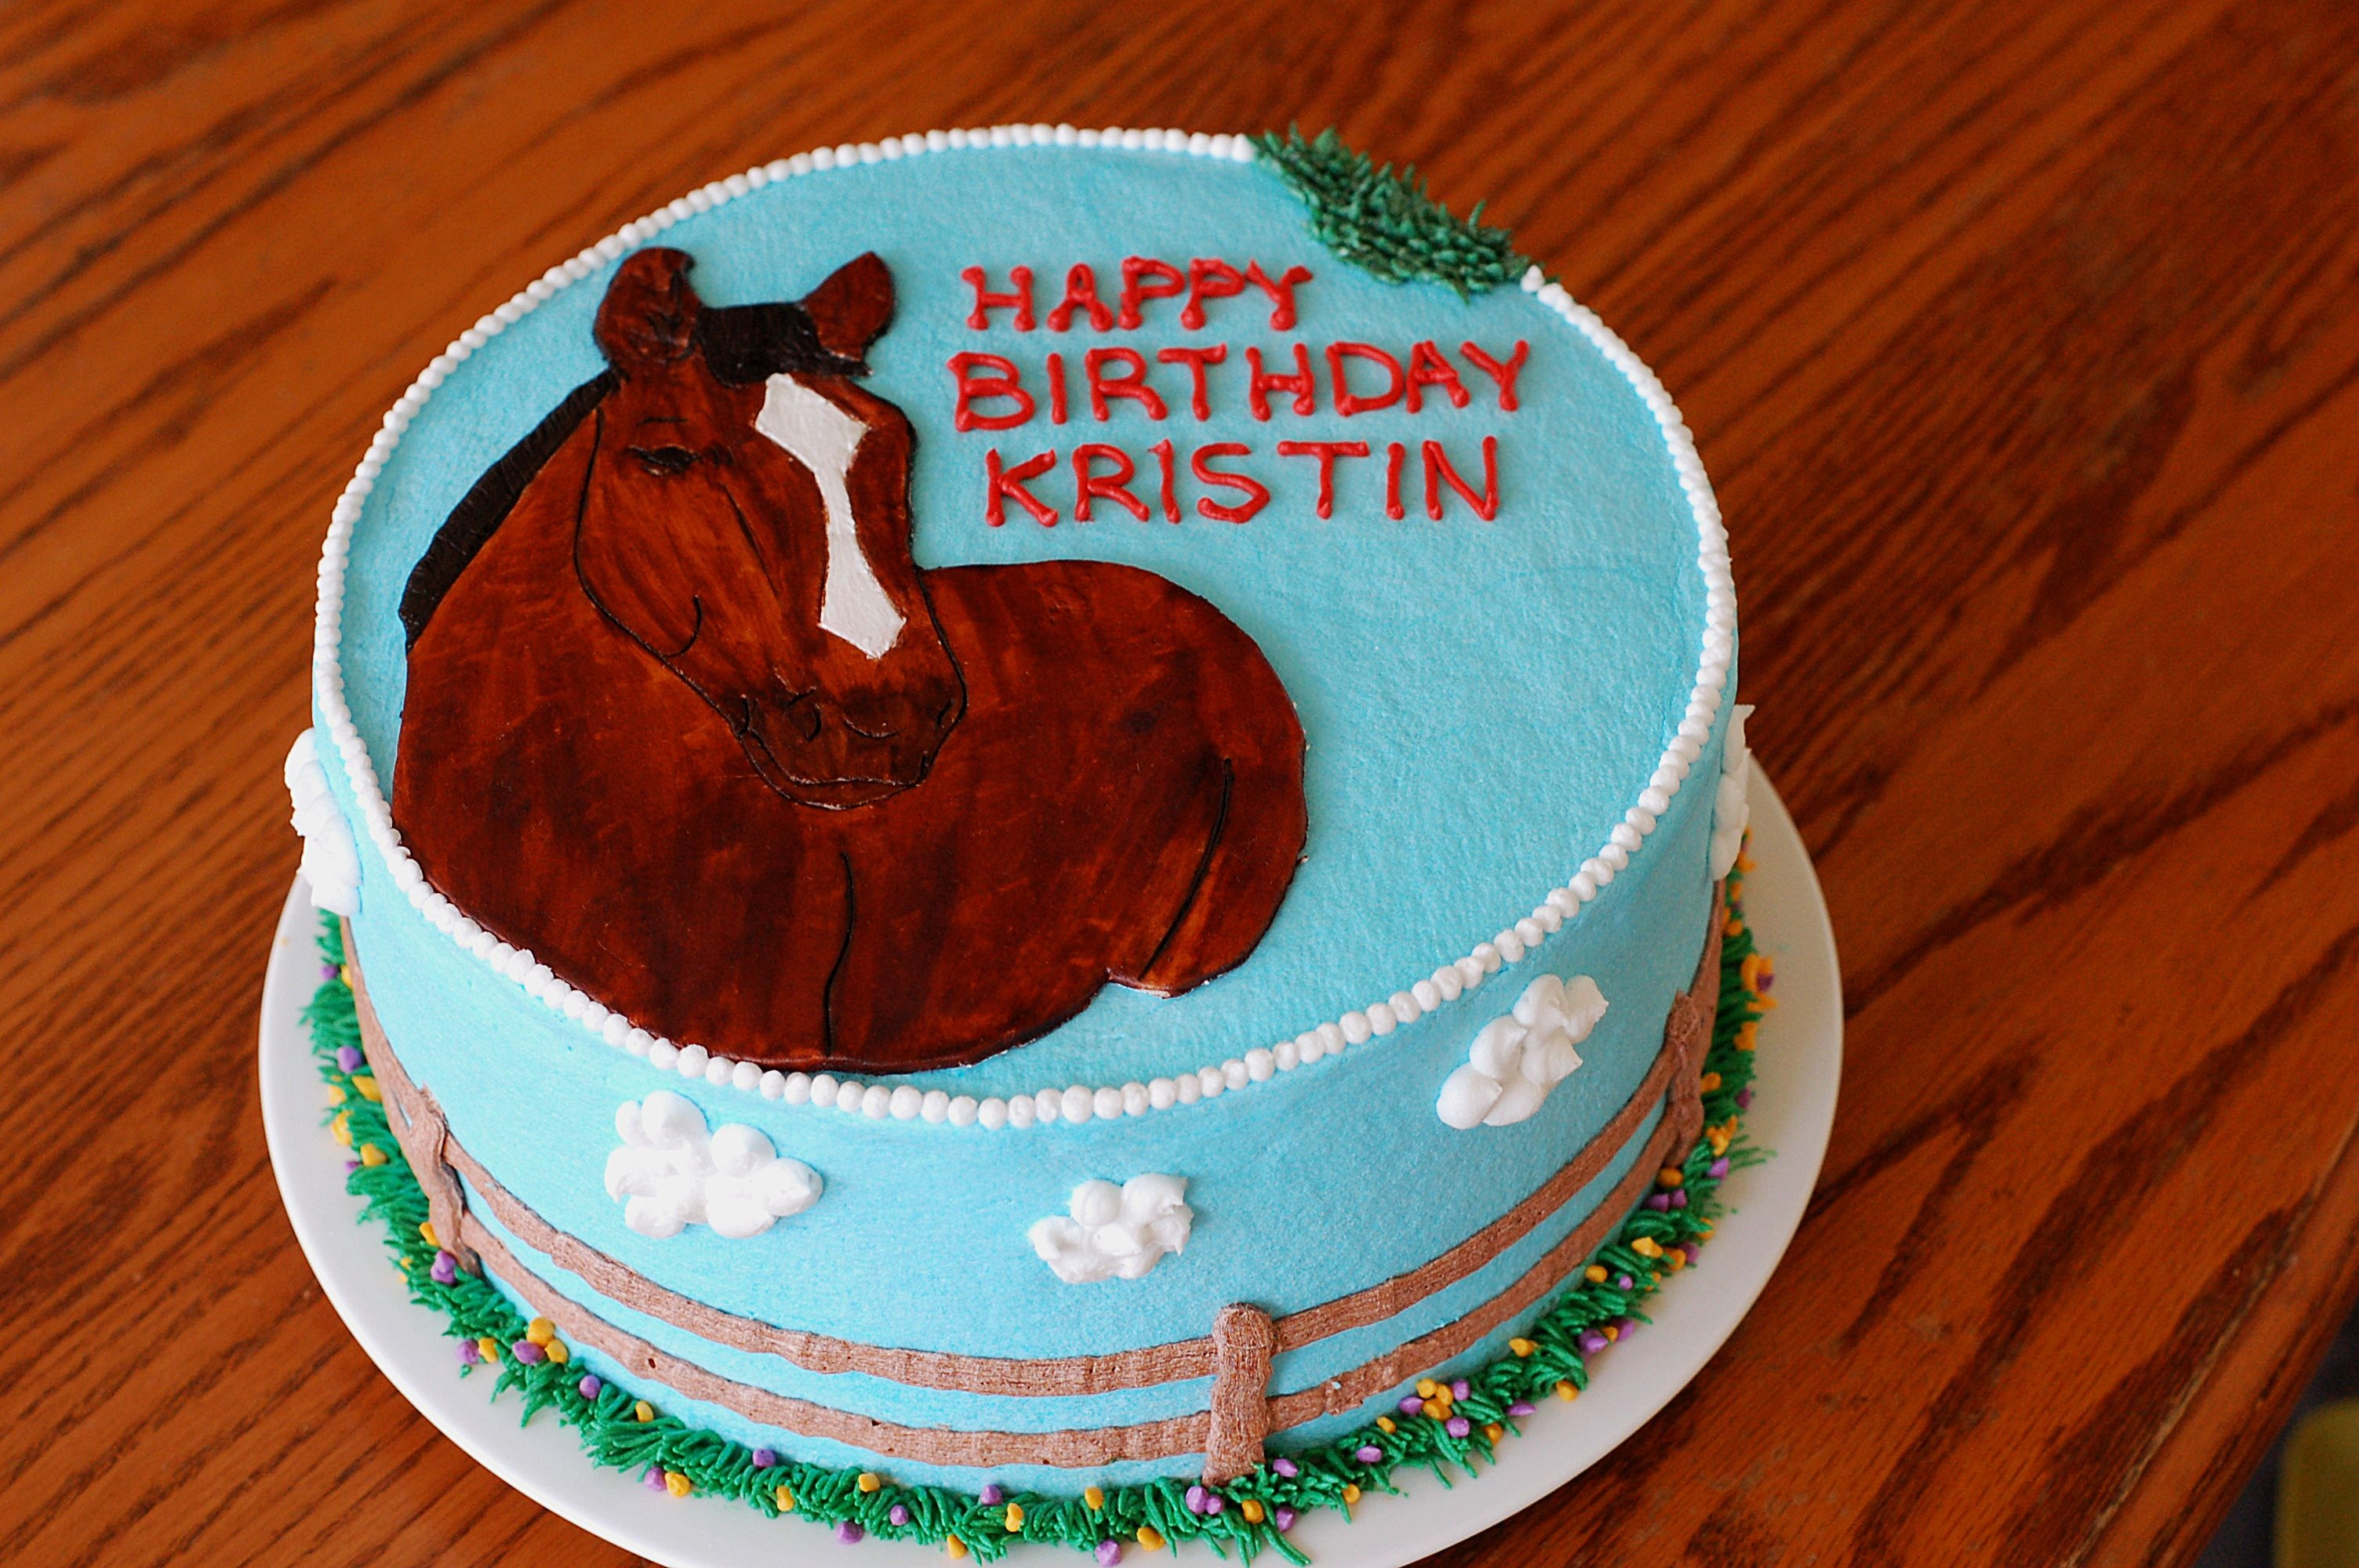 Horse Cake The cake I made for my niece's 13th birthday. Her parents bought her horse back riding lessons for her birthday and they wanted a...